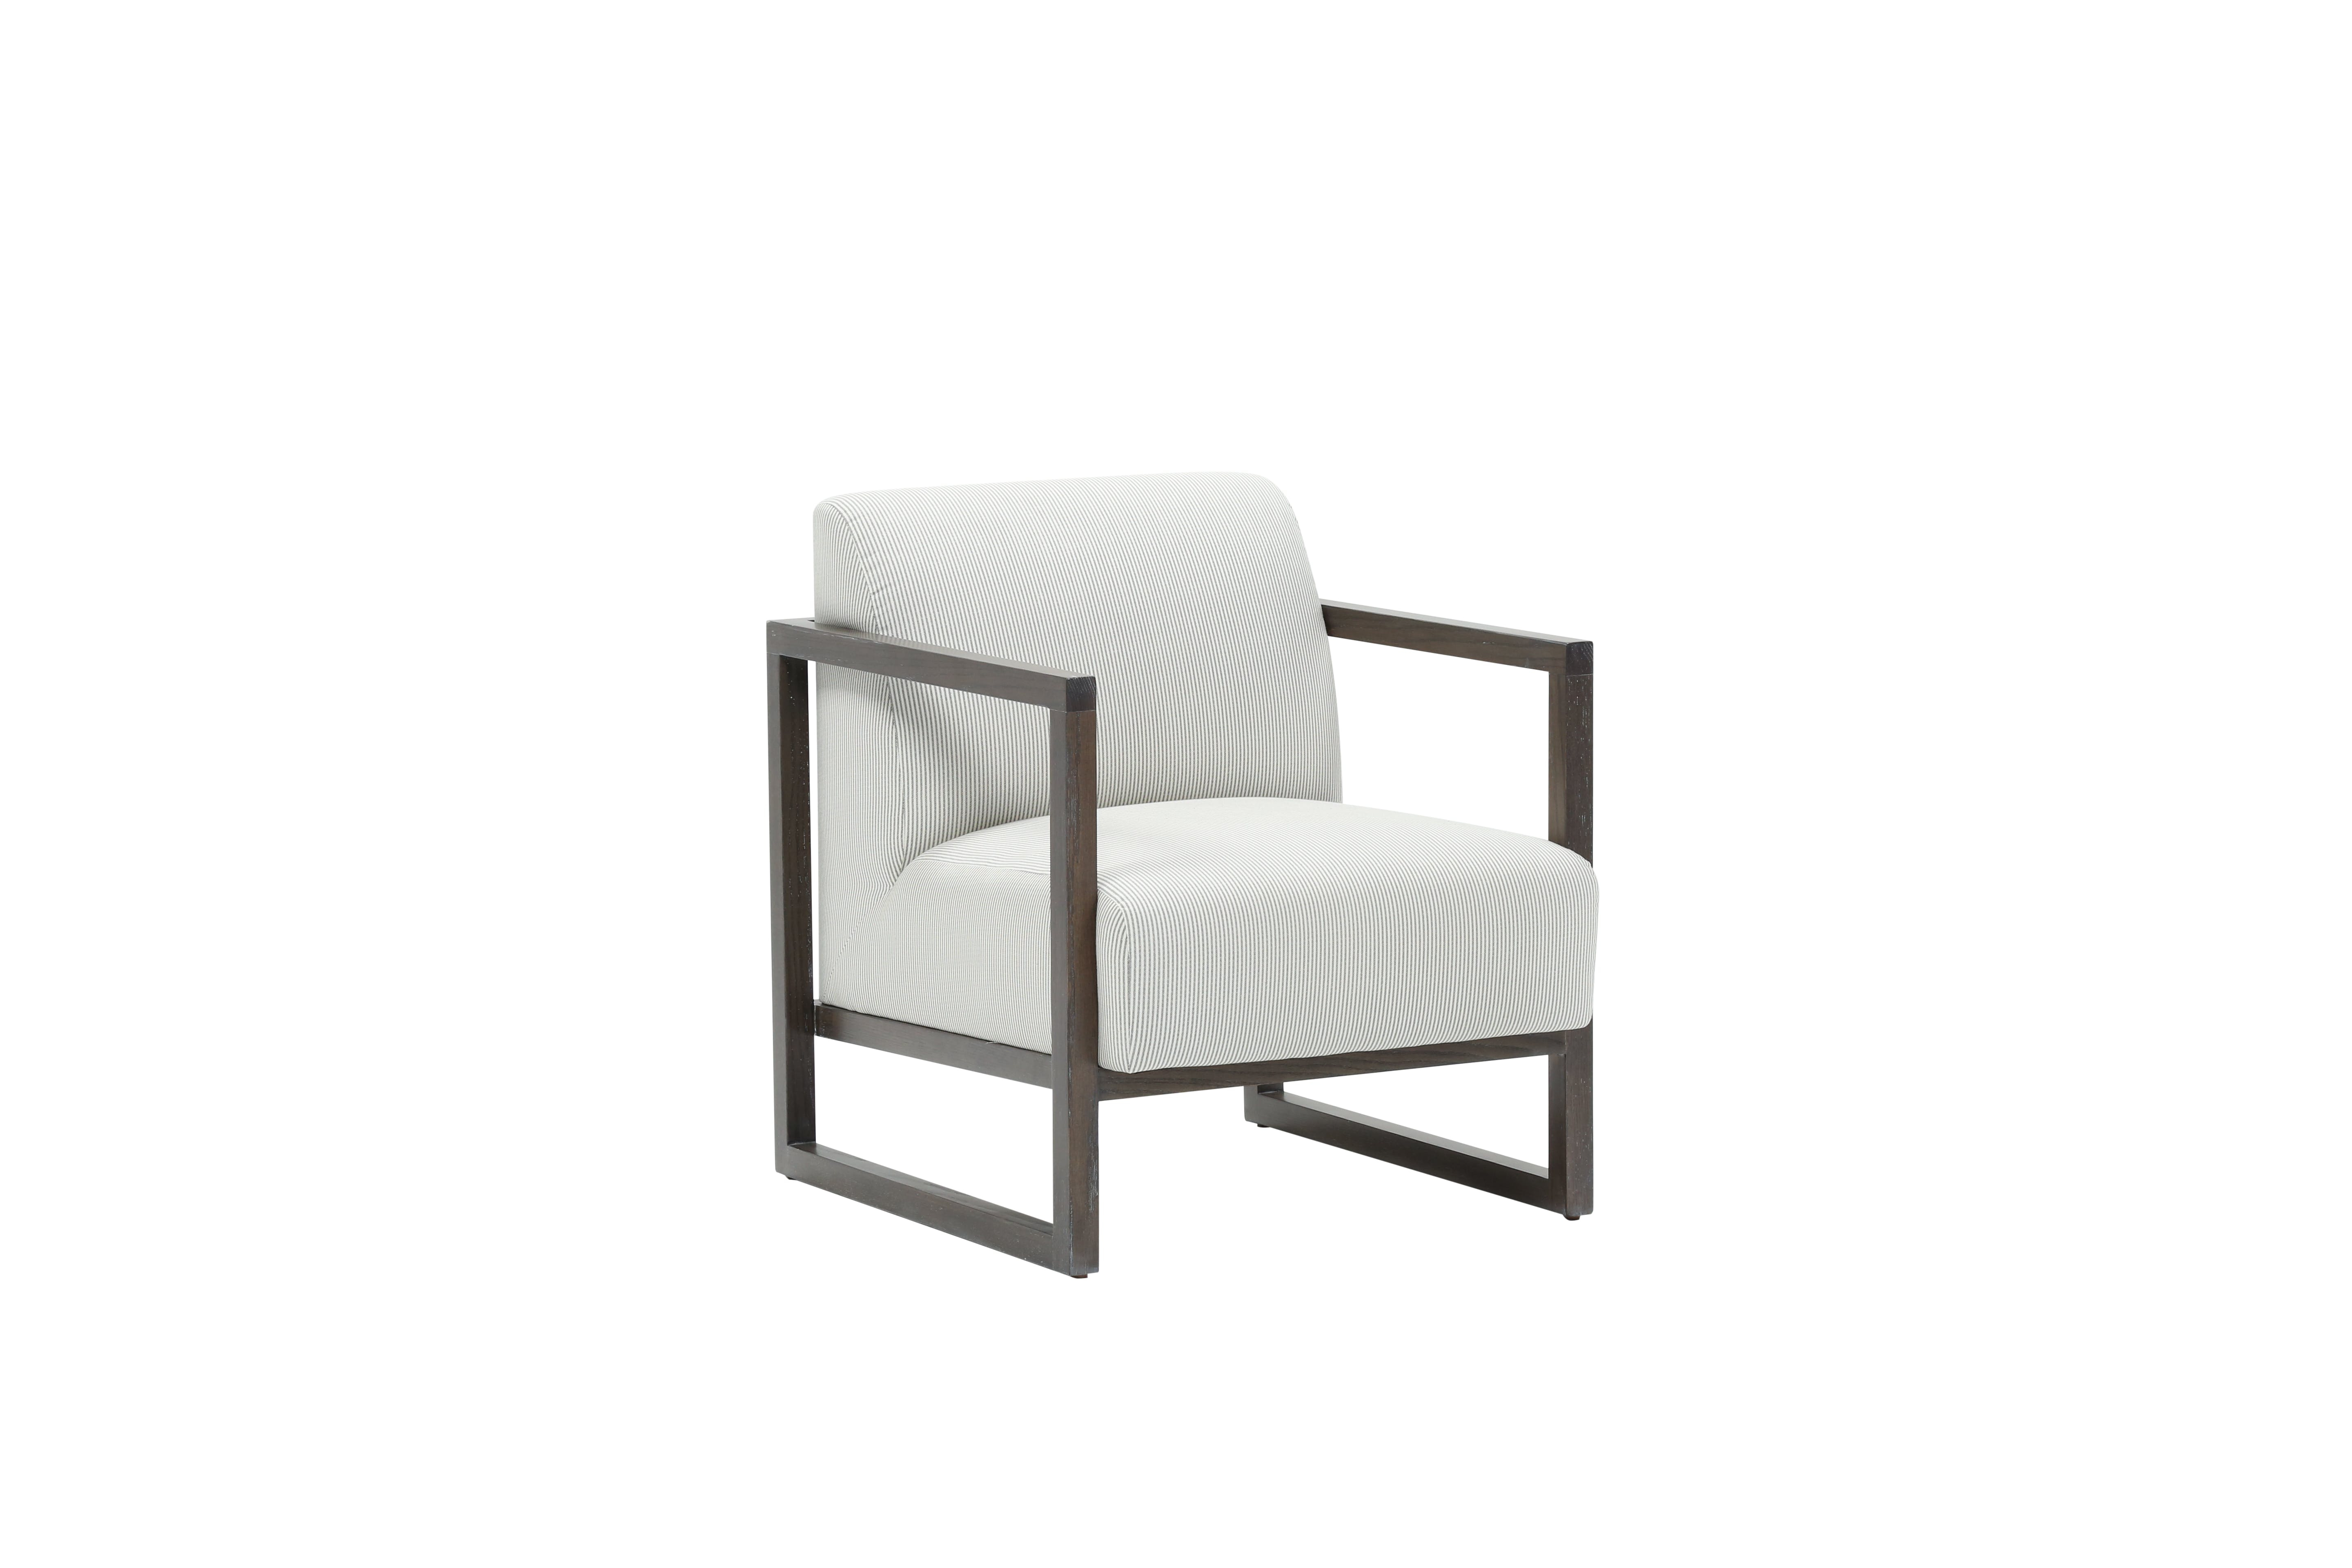 Nate Berkus Just Launched A Home Collection With Hubby Jeremiah Regarding Liv Arm Sofa Chairs By Nate Berkus And Jeremiah Brent (Photo 13 of 20)